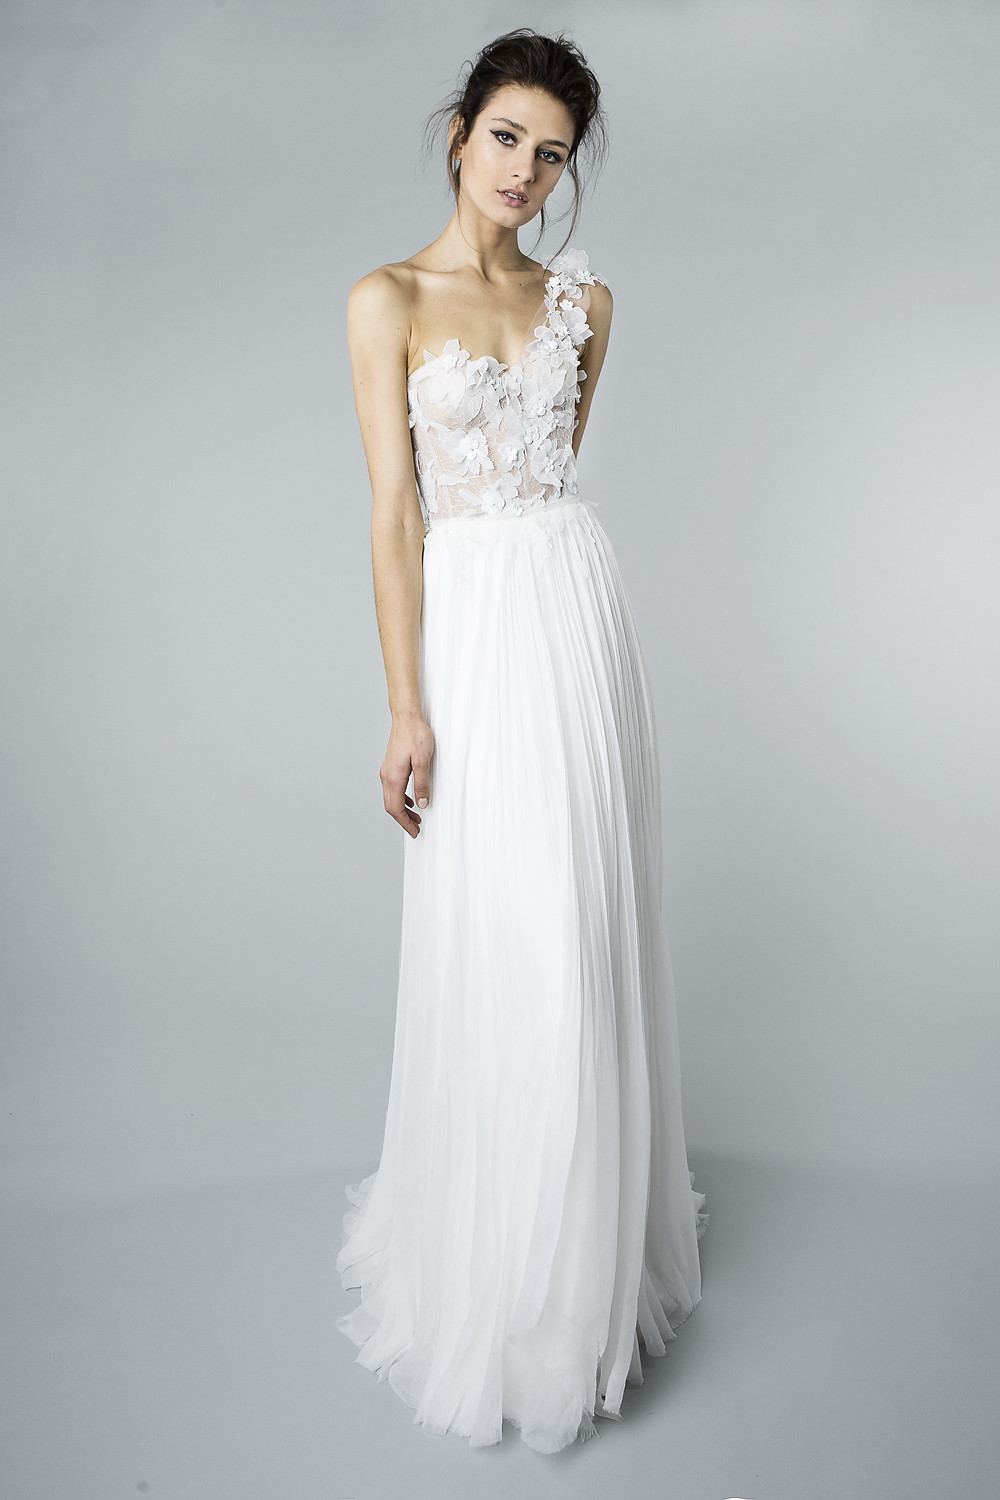 A Mira Zwillinger one shoulder, sheath wedding dress with pleated skirt and flowers